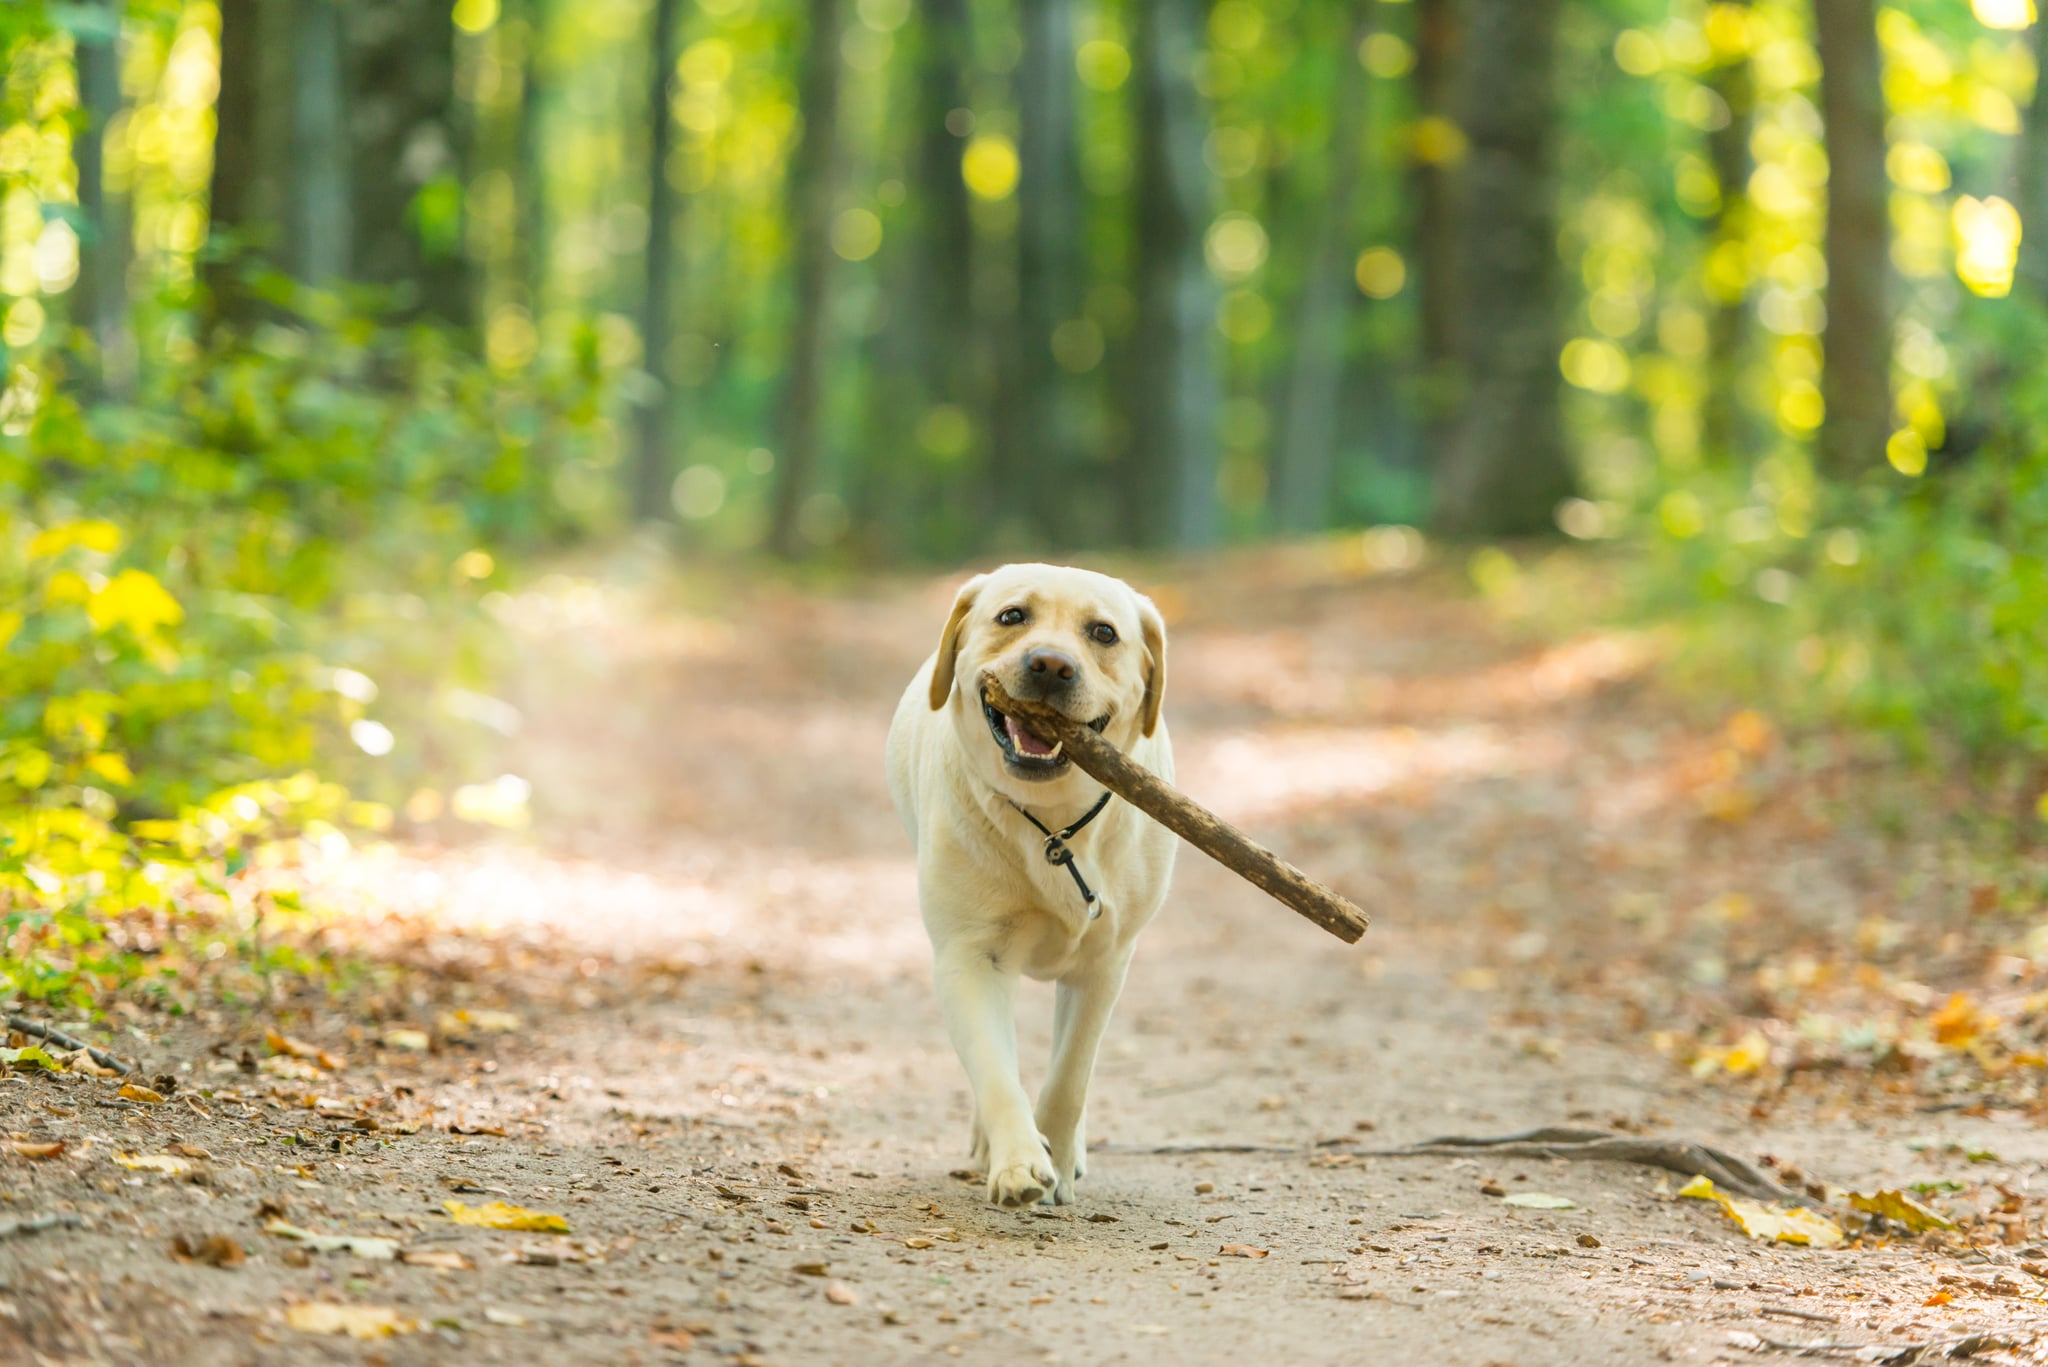 Closeup image of a yeallow labrador retriever dog carring a stick in forest near Cluj-Napoca, Transylvania, Romania